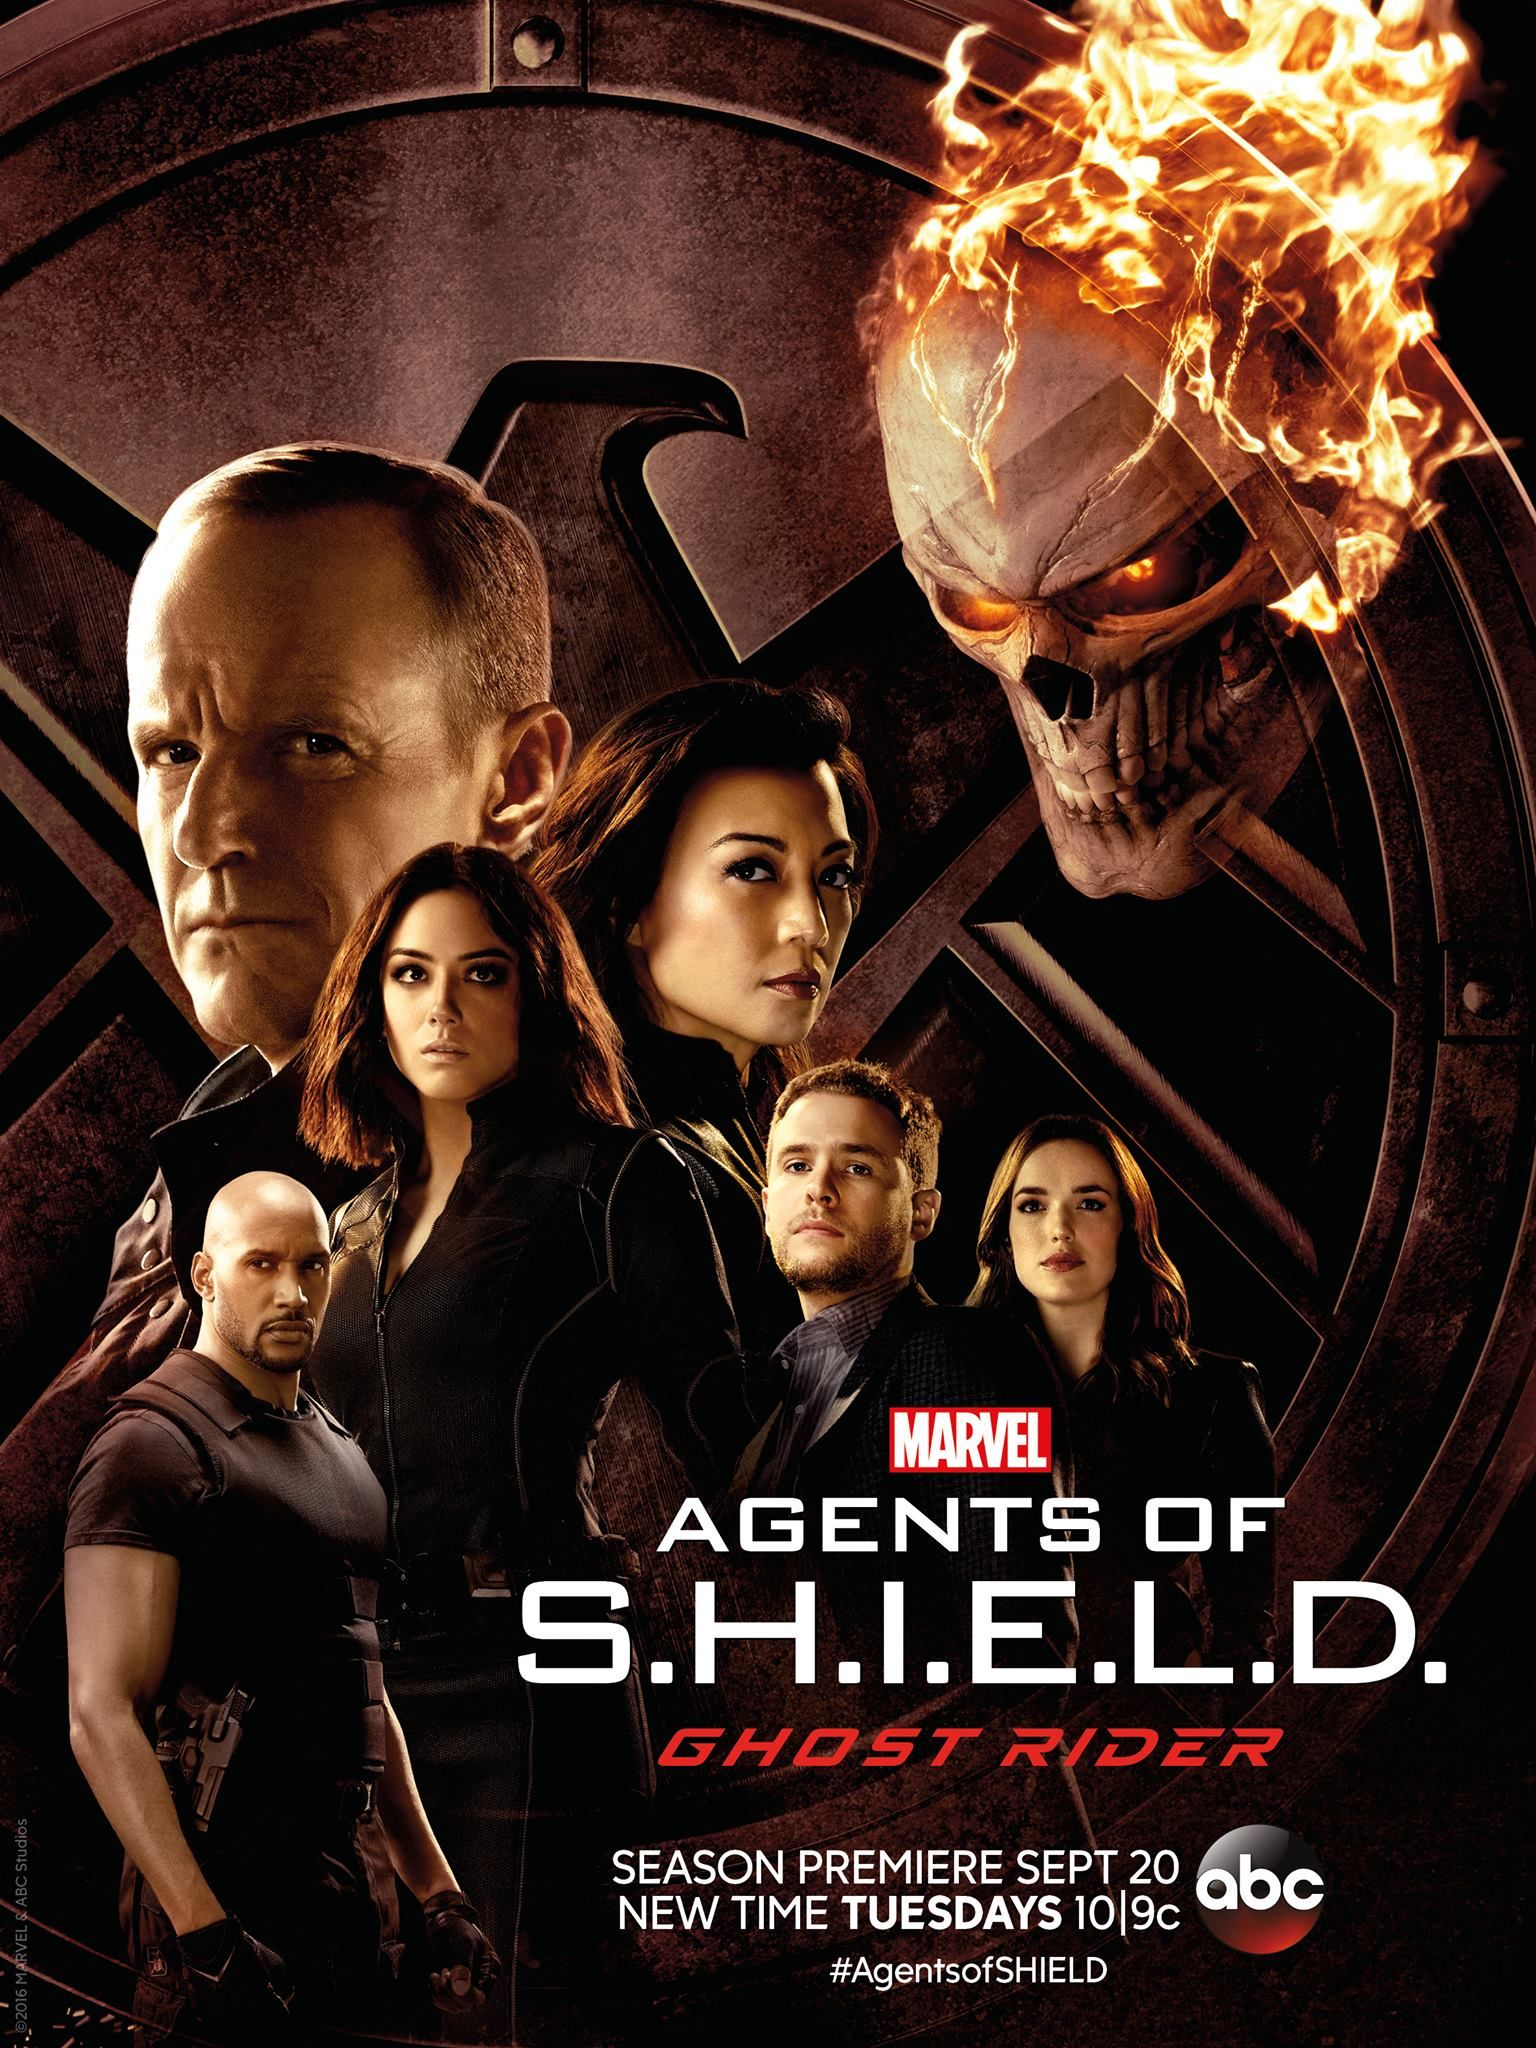 Agents Of Shield Motoqueiro Fantasma Series E Filmes E Filmes Hd